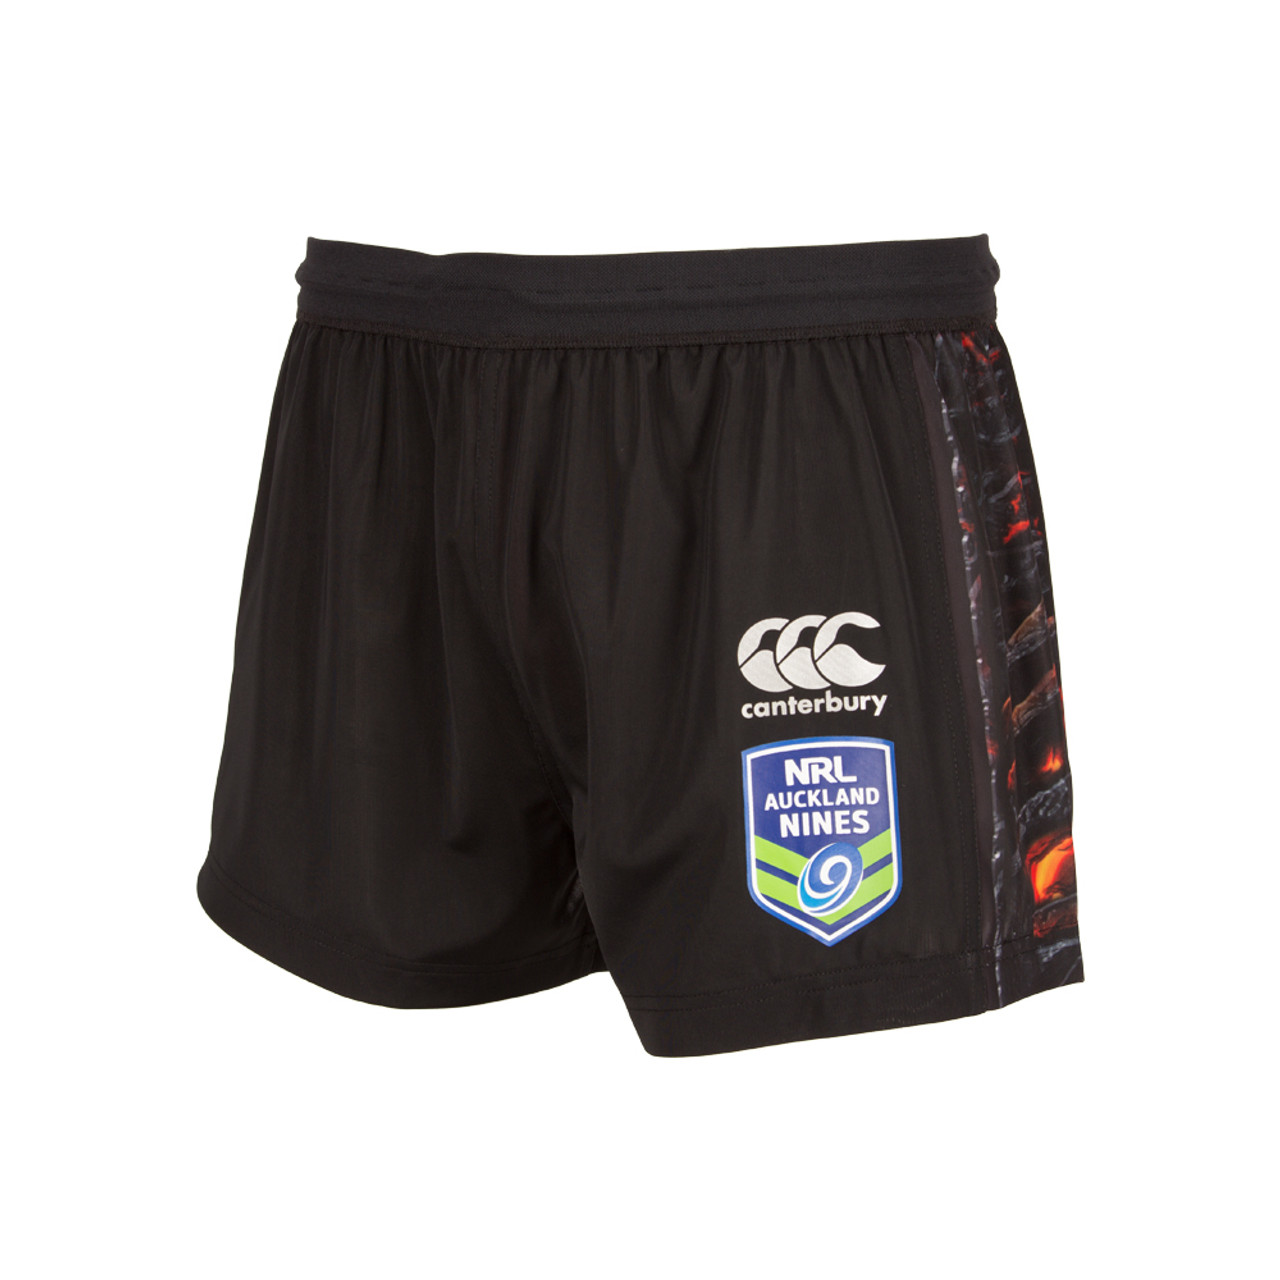 2017 Vodafone Warriors CCC Auckland 9 s Shorts - Adults - Warriors ... b134c0abf